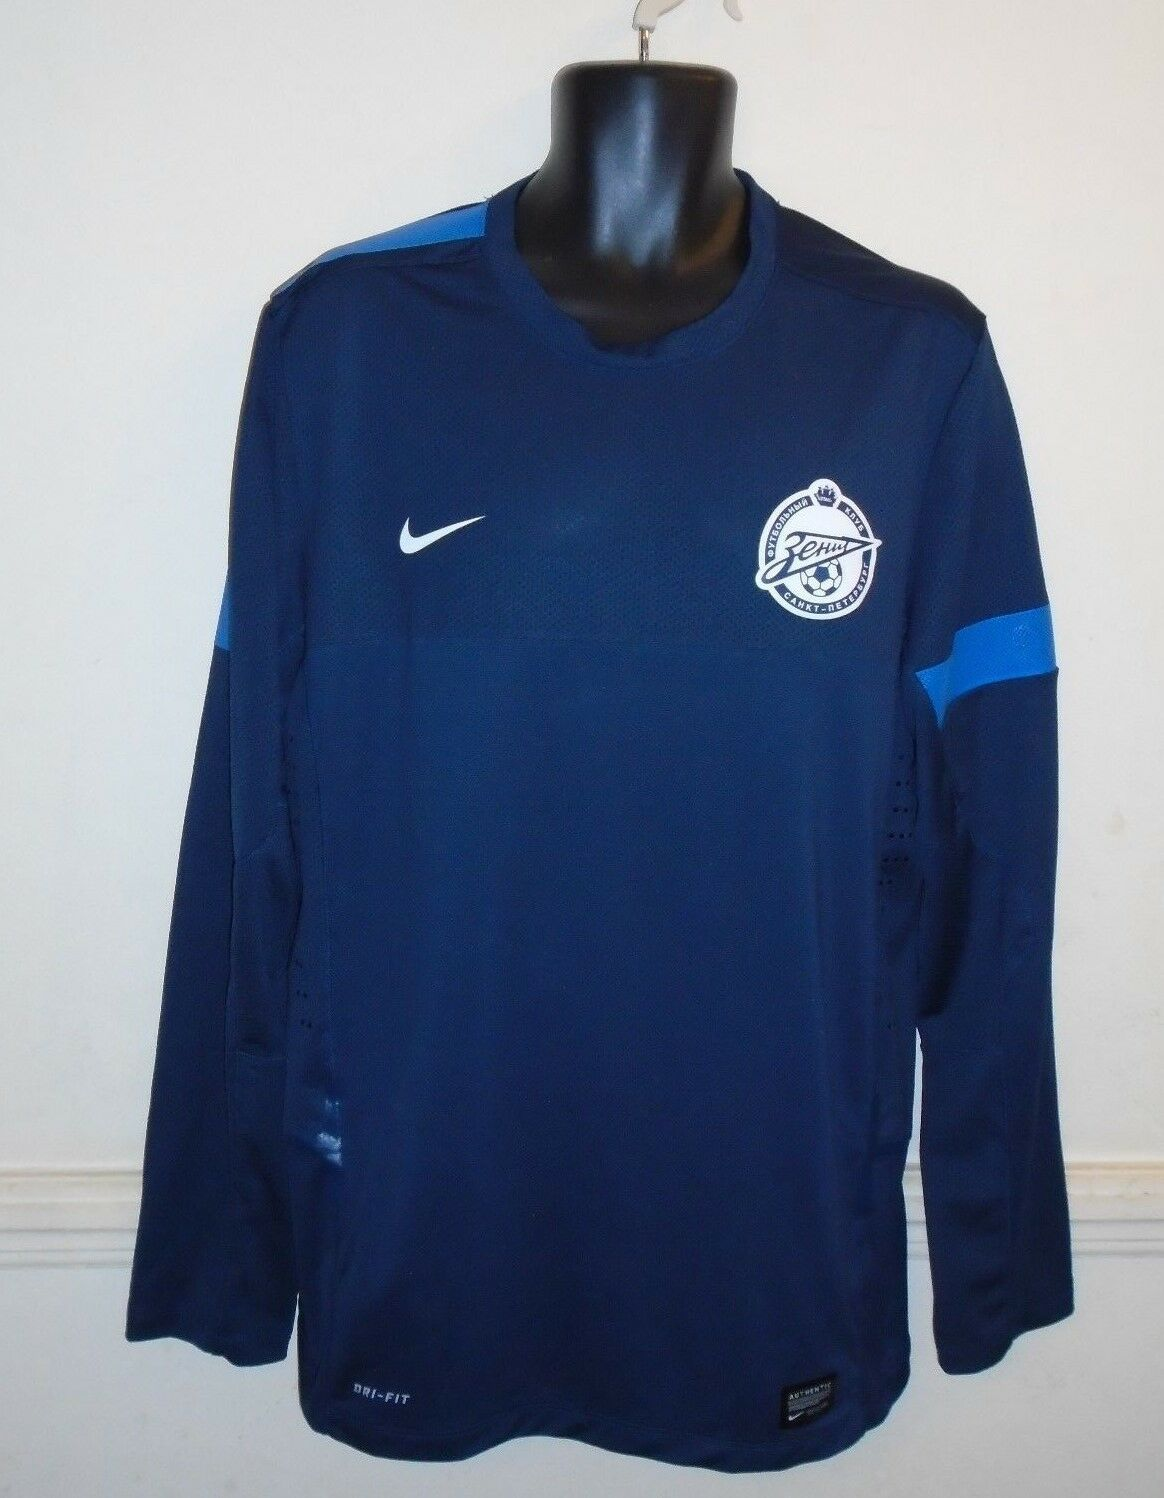 Zenit St Petersburg Long Sleeves Shirt xl men's New Without Tags D